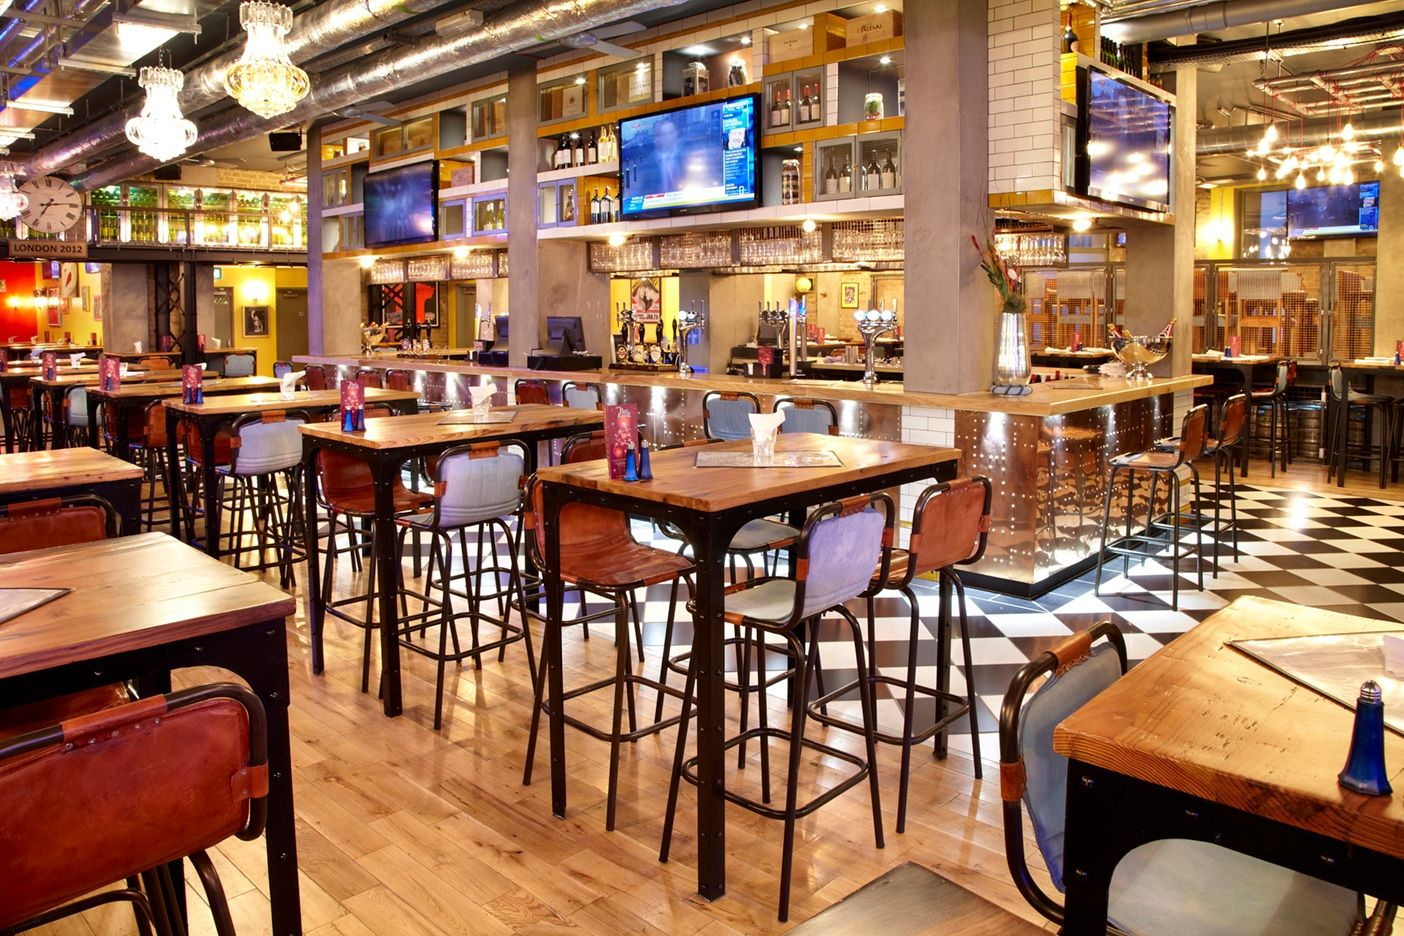 Sports bar and grill Waterloo , cool interior | Office | Pinterest ...